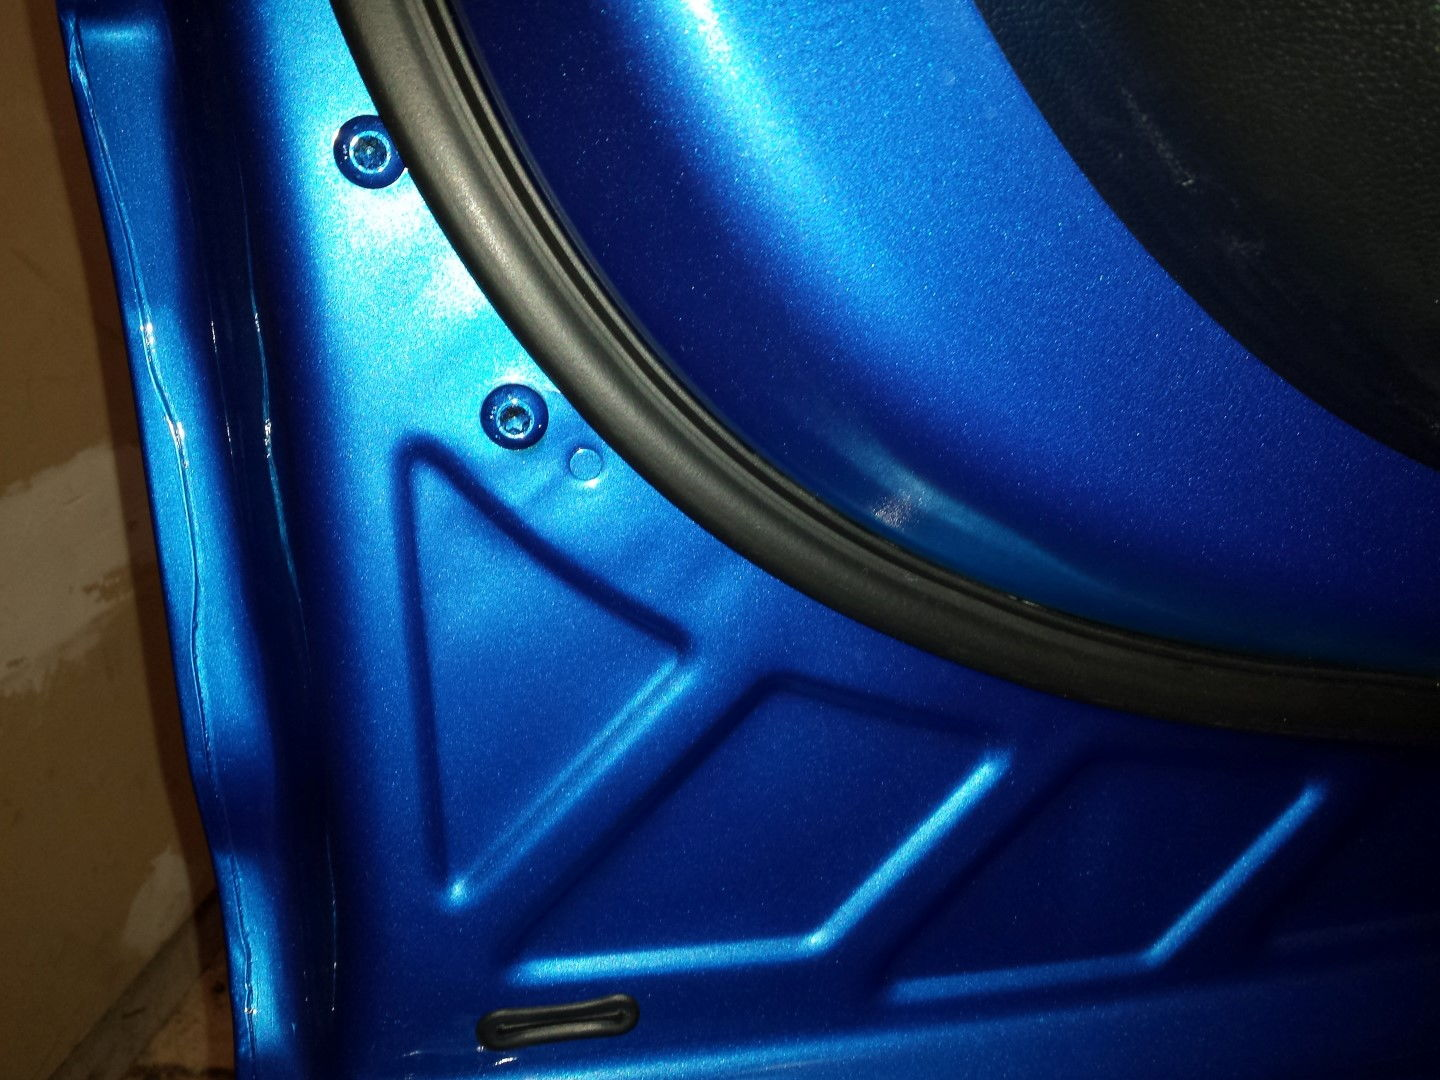 Wrench symbol on dash and truck died ford f150 forum community thanks crew guys gals buycottarizona Choice Image